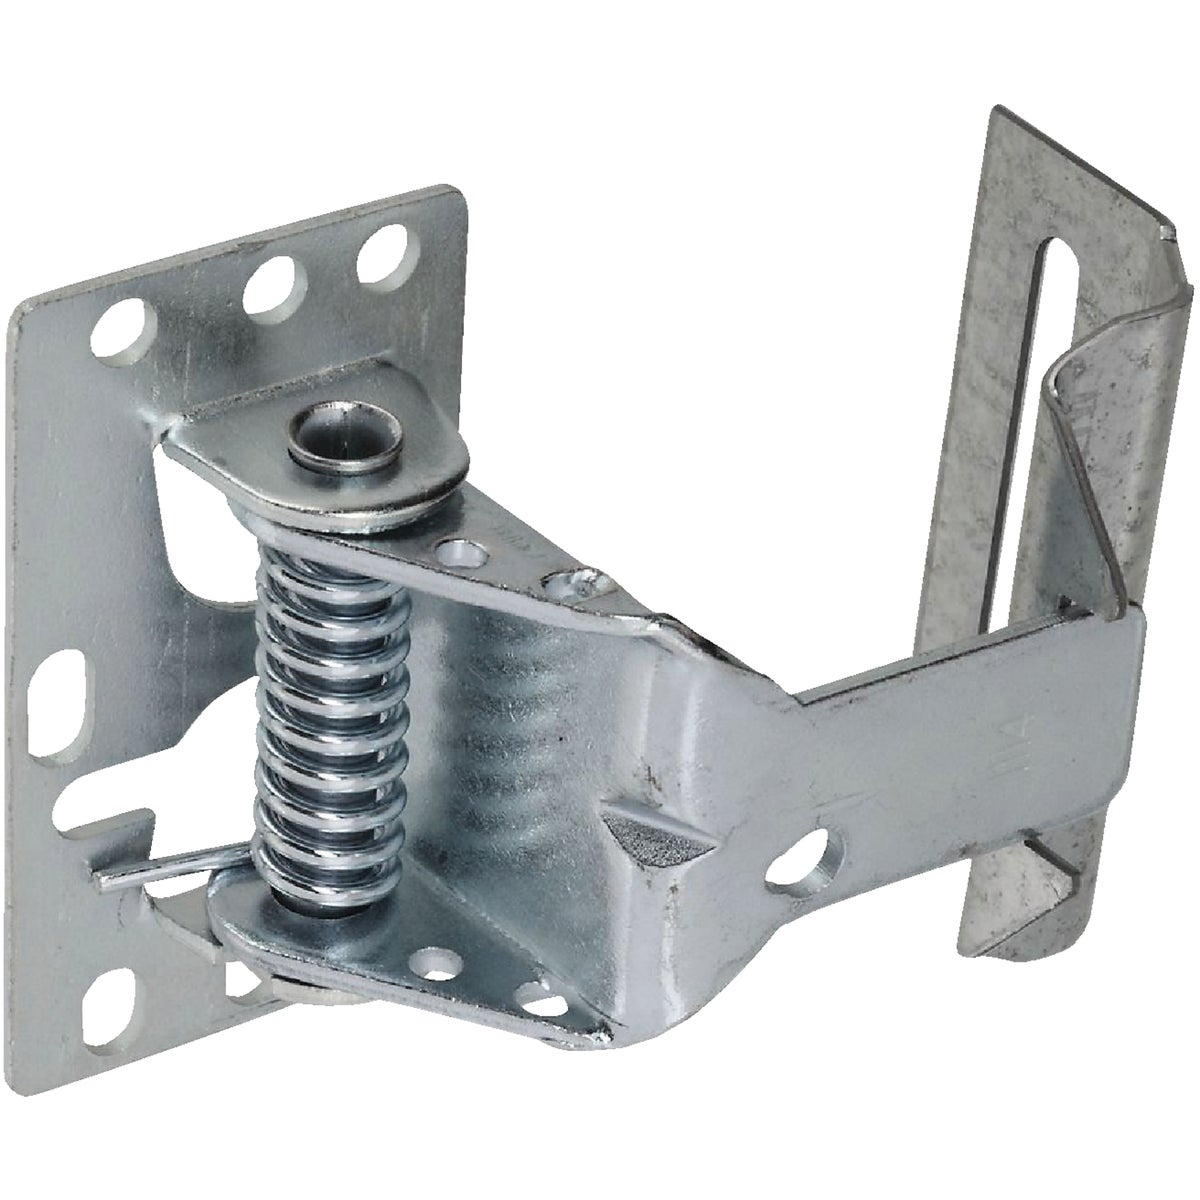 National Mfg. SNAP LOCK N280800